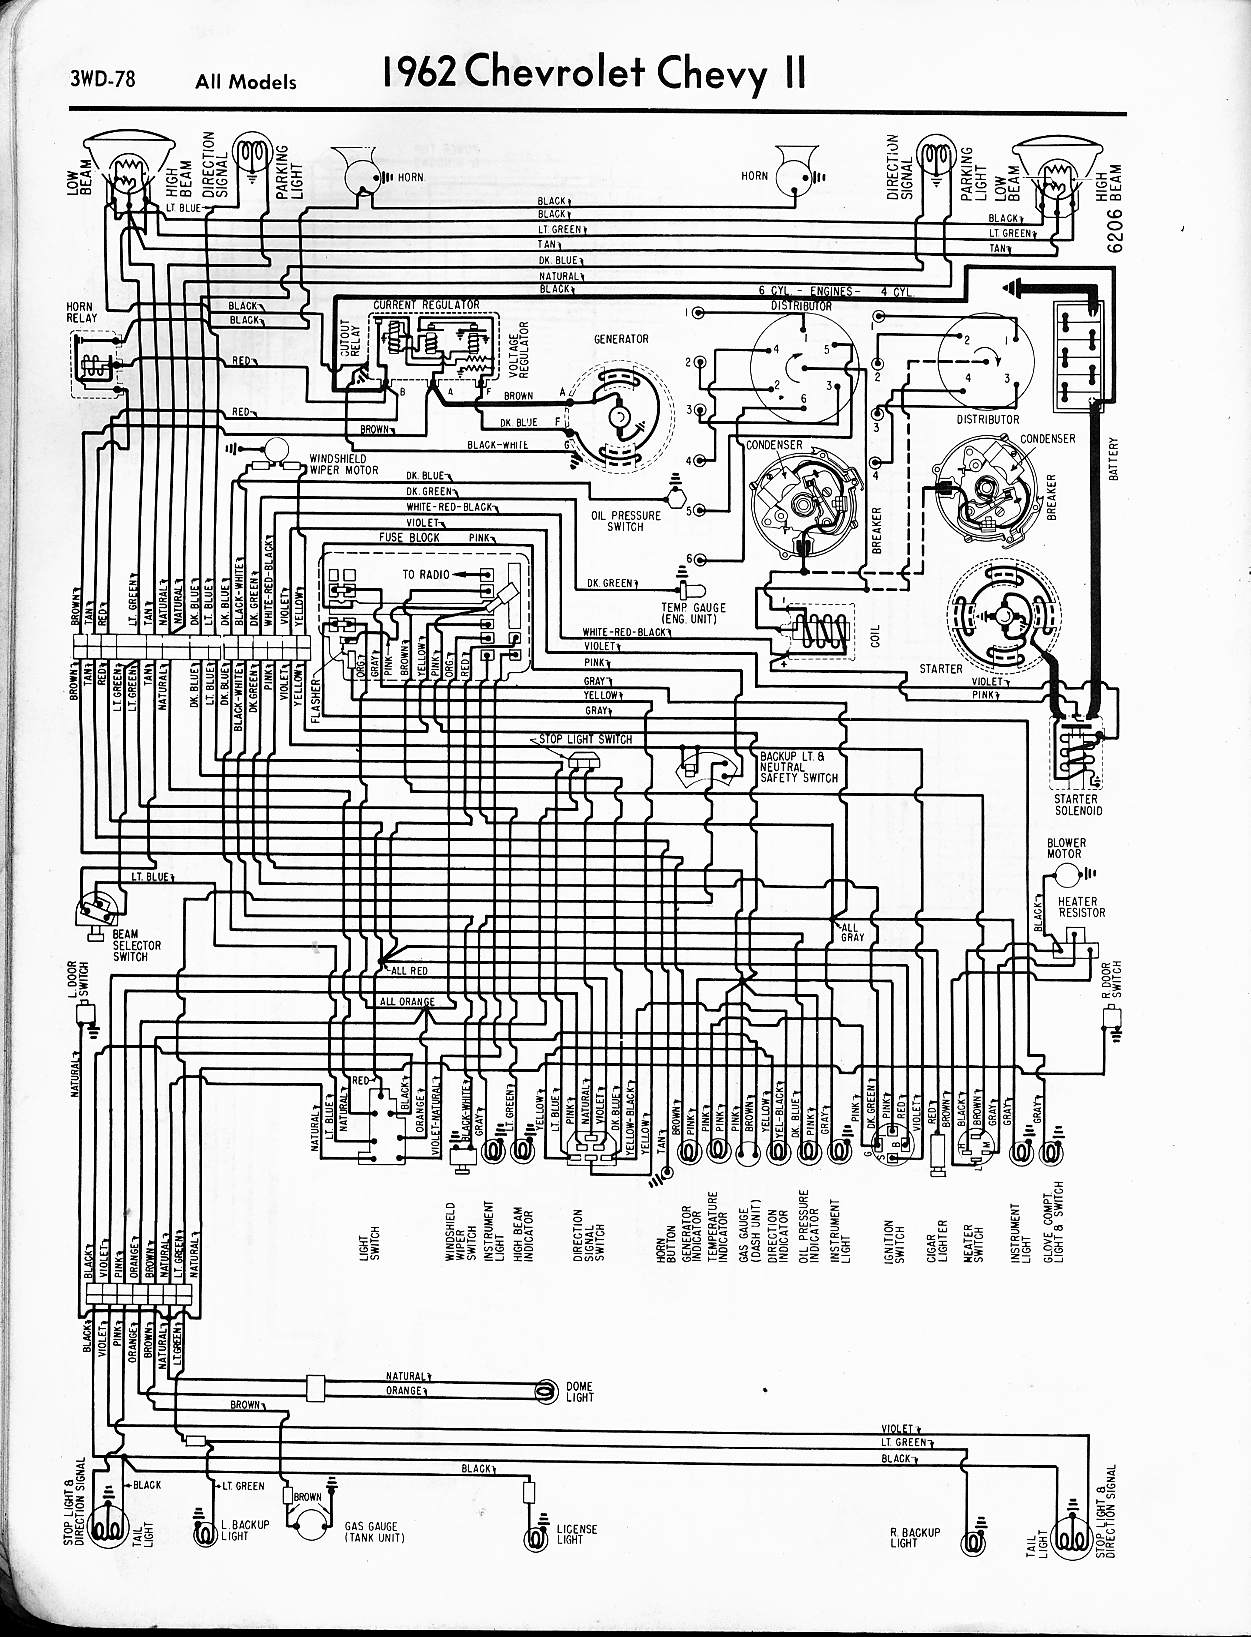 57 65 Chevy Wiring Diagrams 1941 Buick Diagram Free 1962 Ii All Models